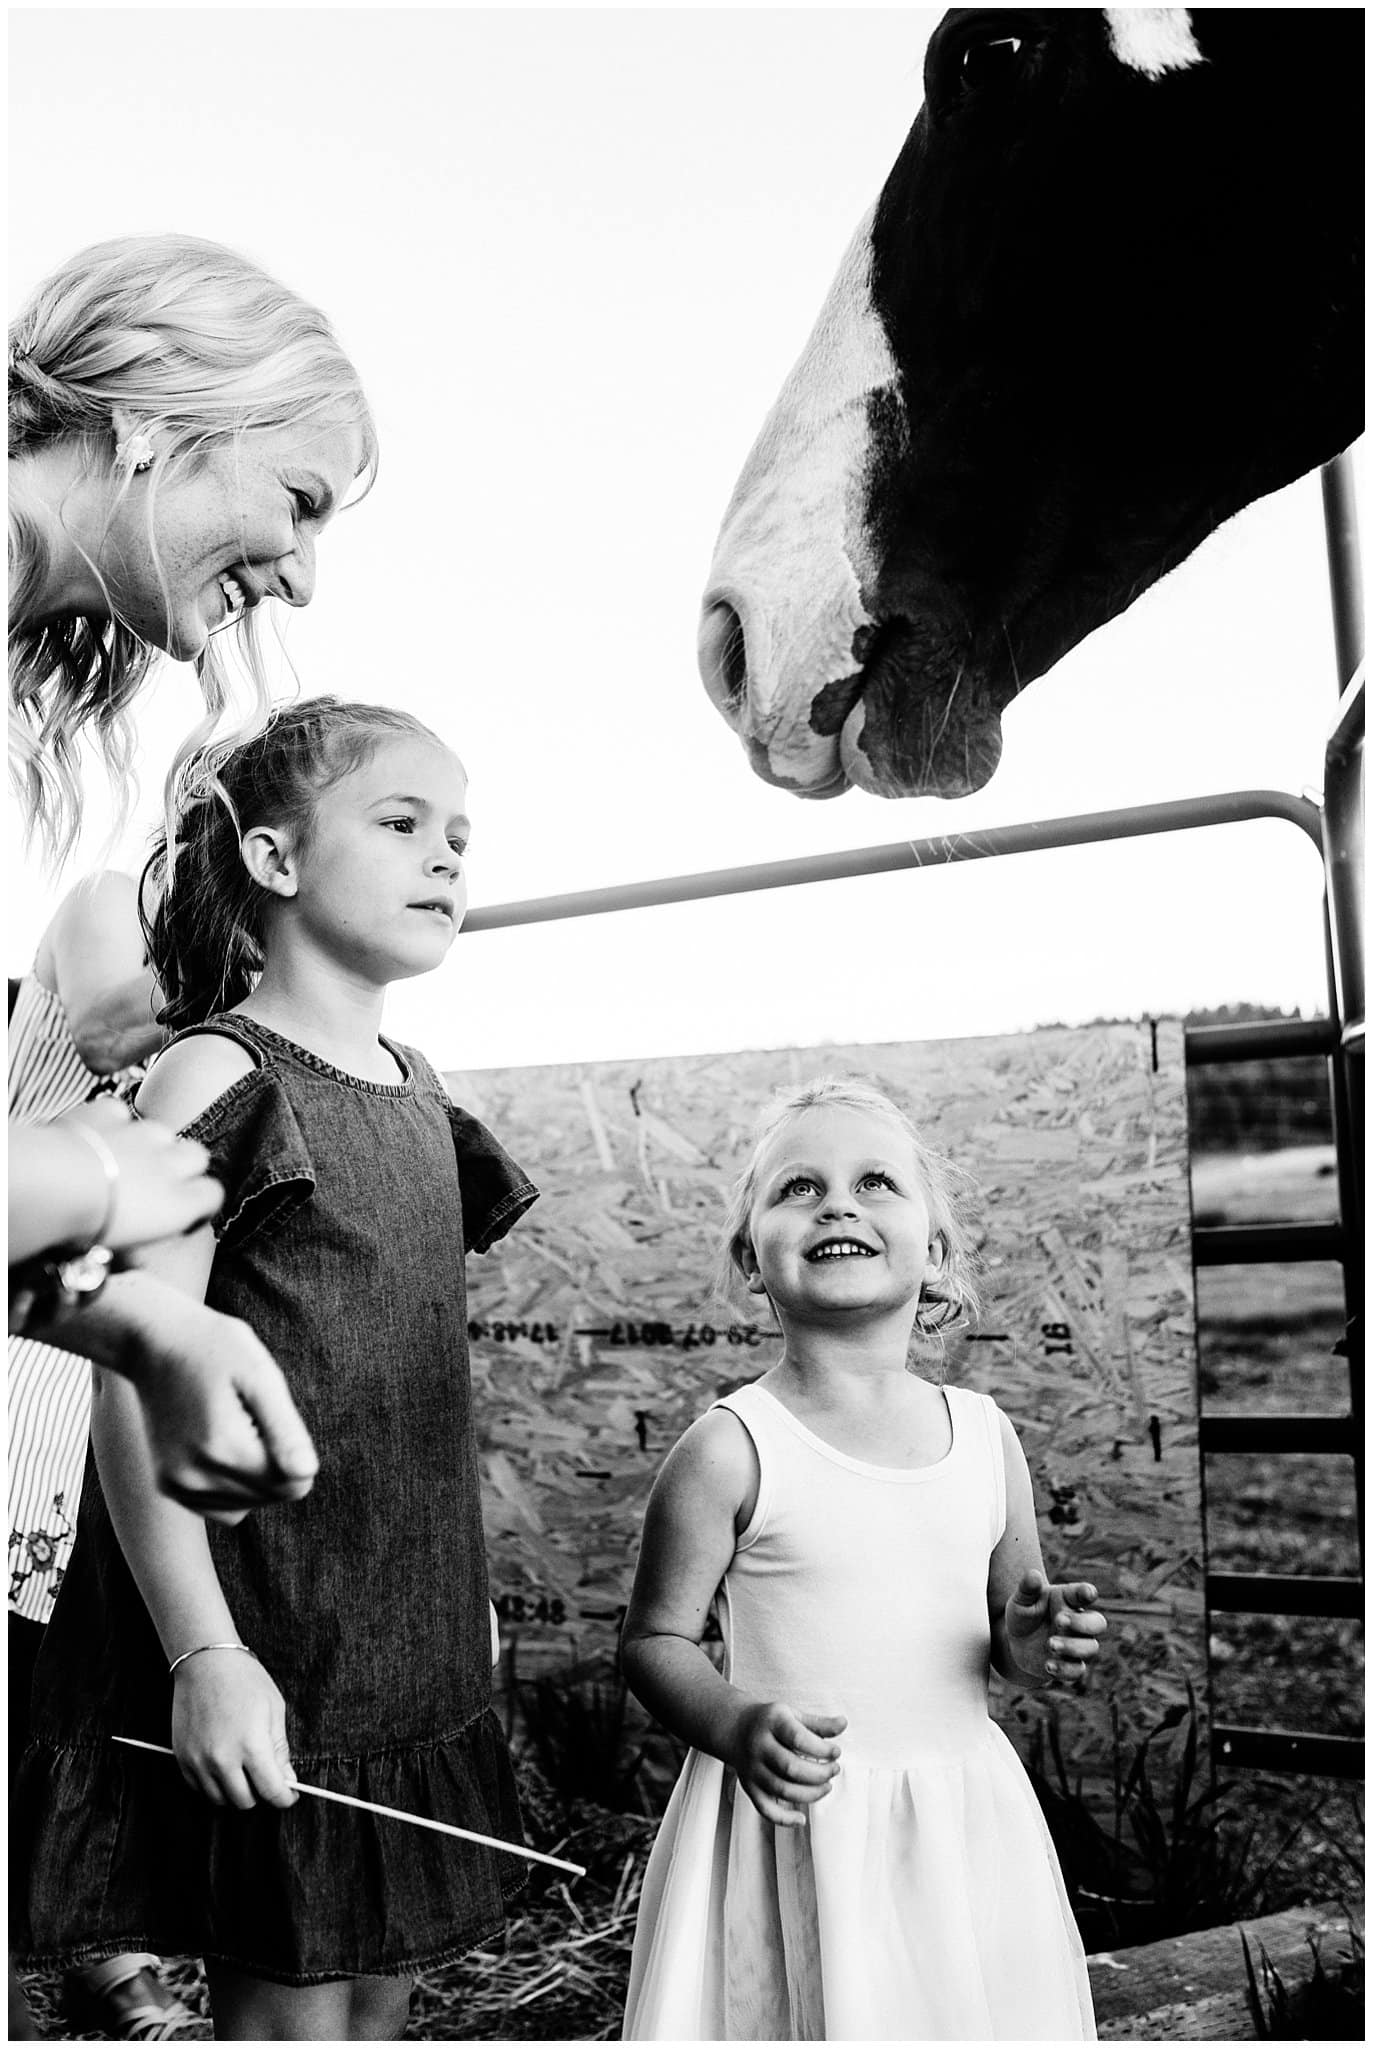 Wedding party feeding a horse at Deer Creek Valley Ranch wedding by Colorado Wedding Photographer Jennie Crate Photographer